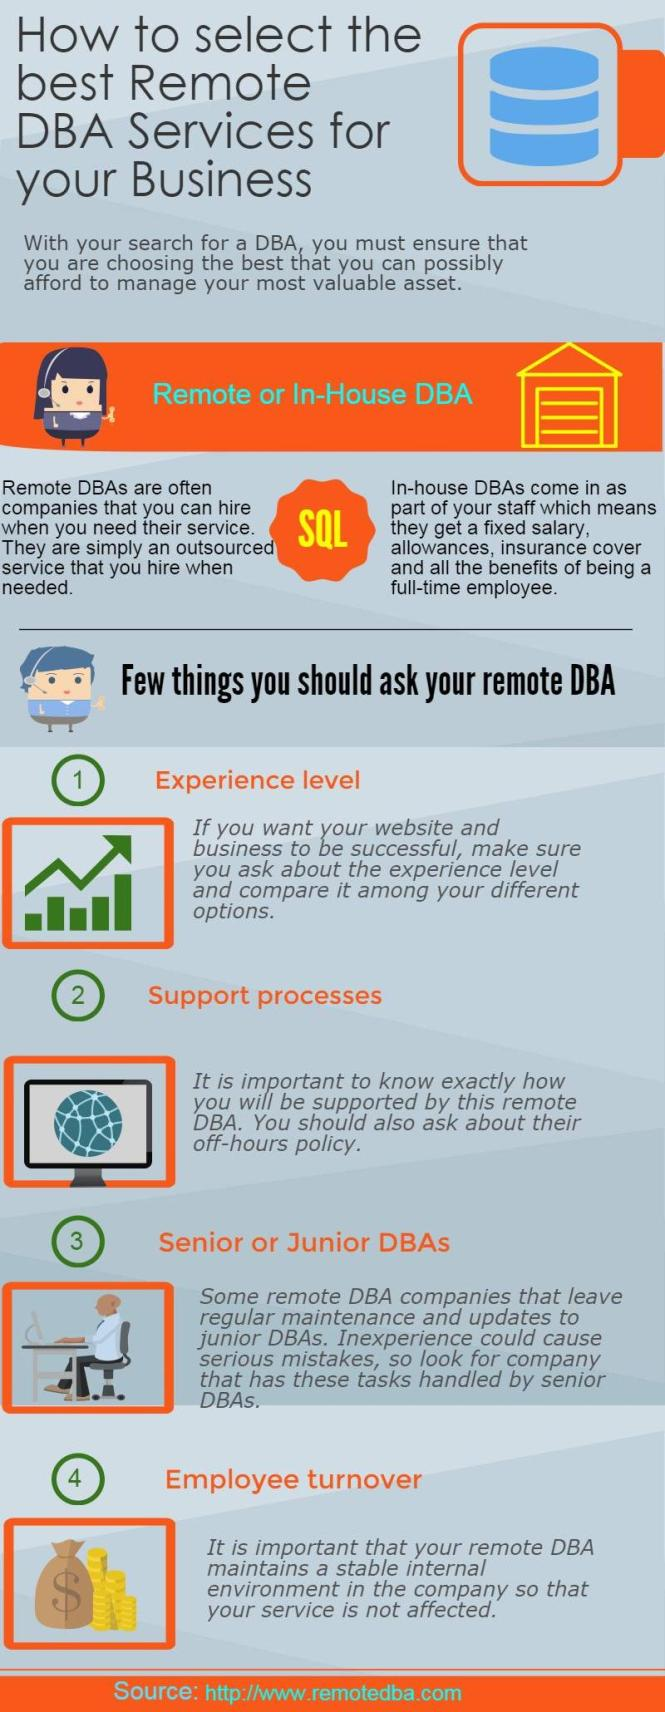 How to Select The Best Remote DBA Services for your Business